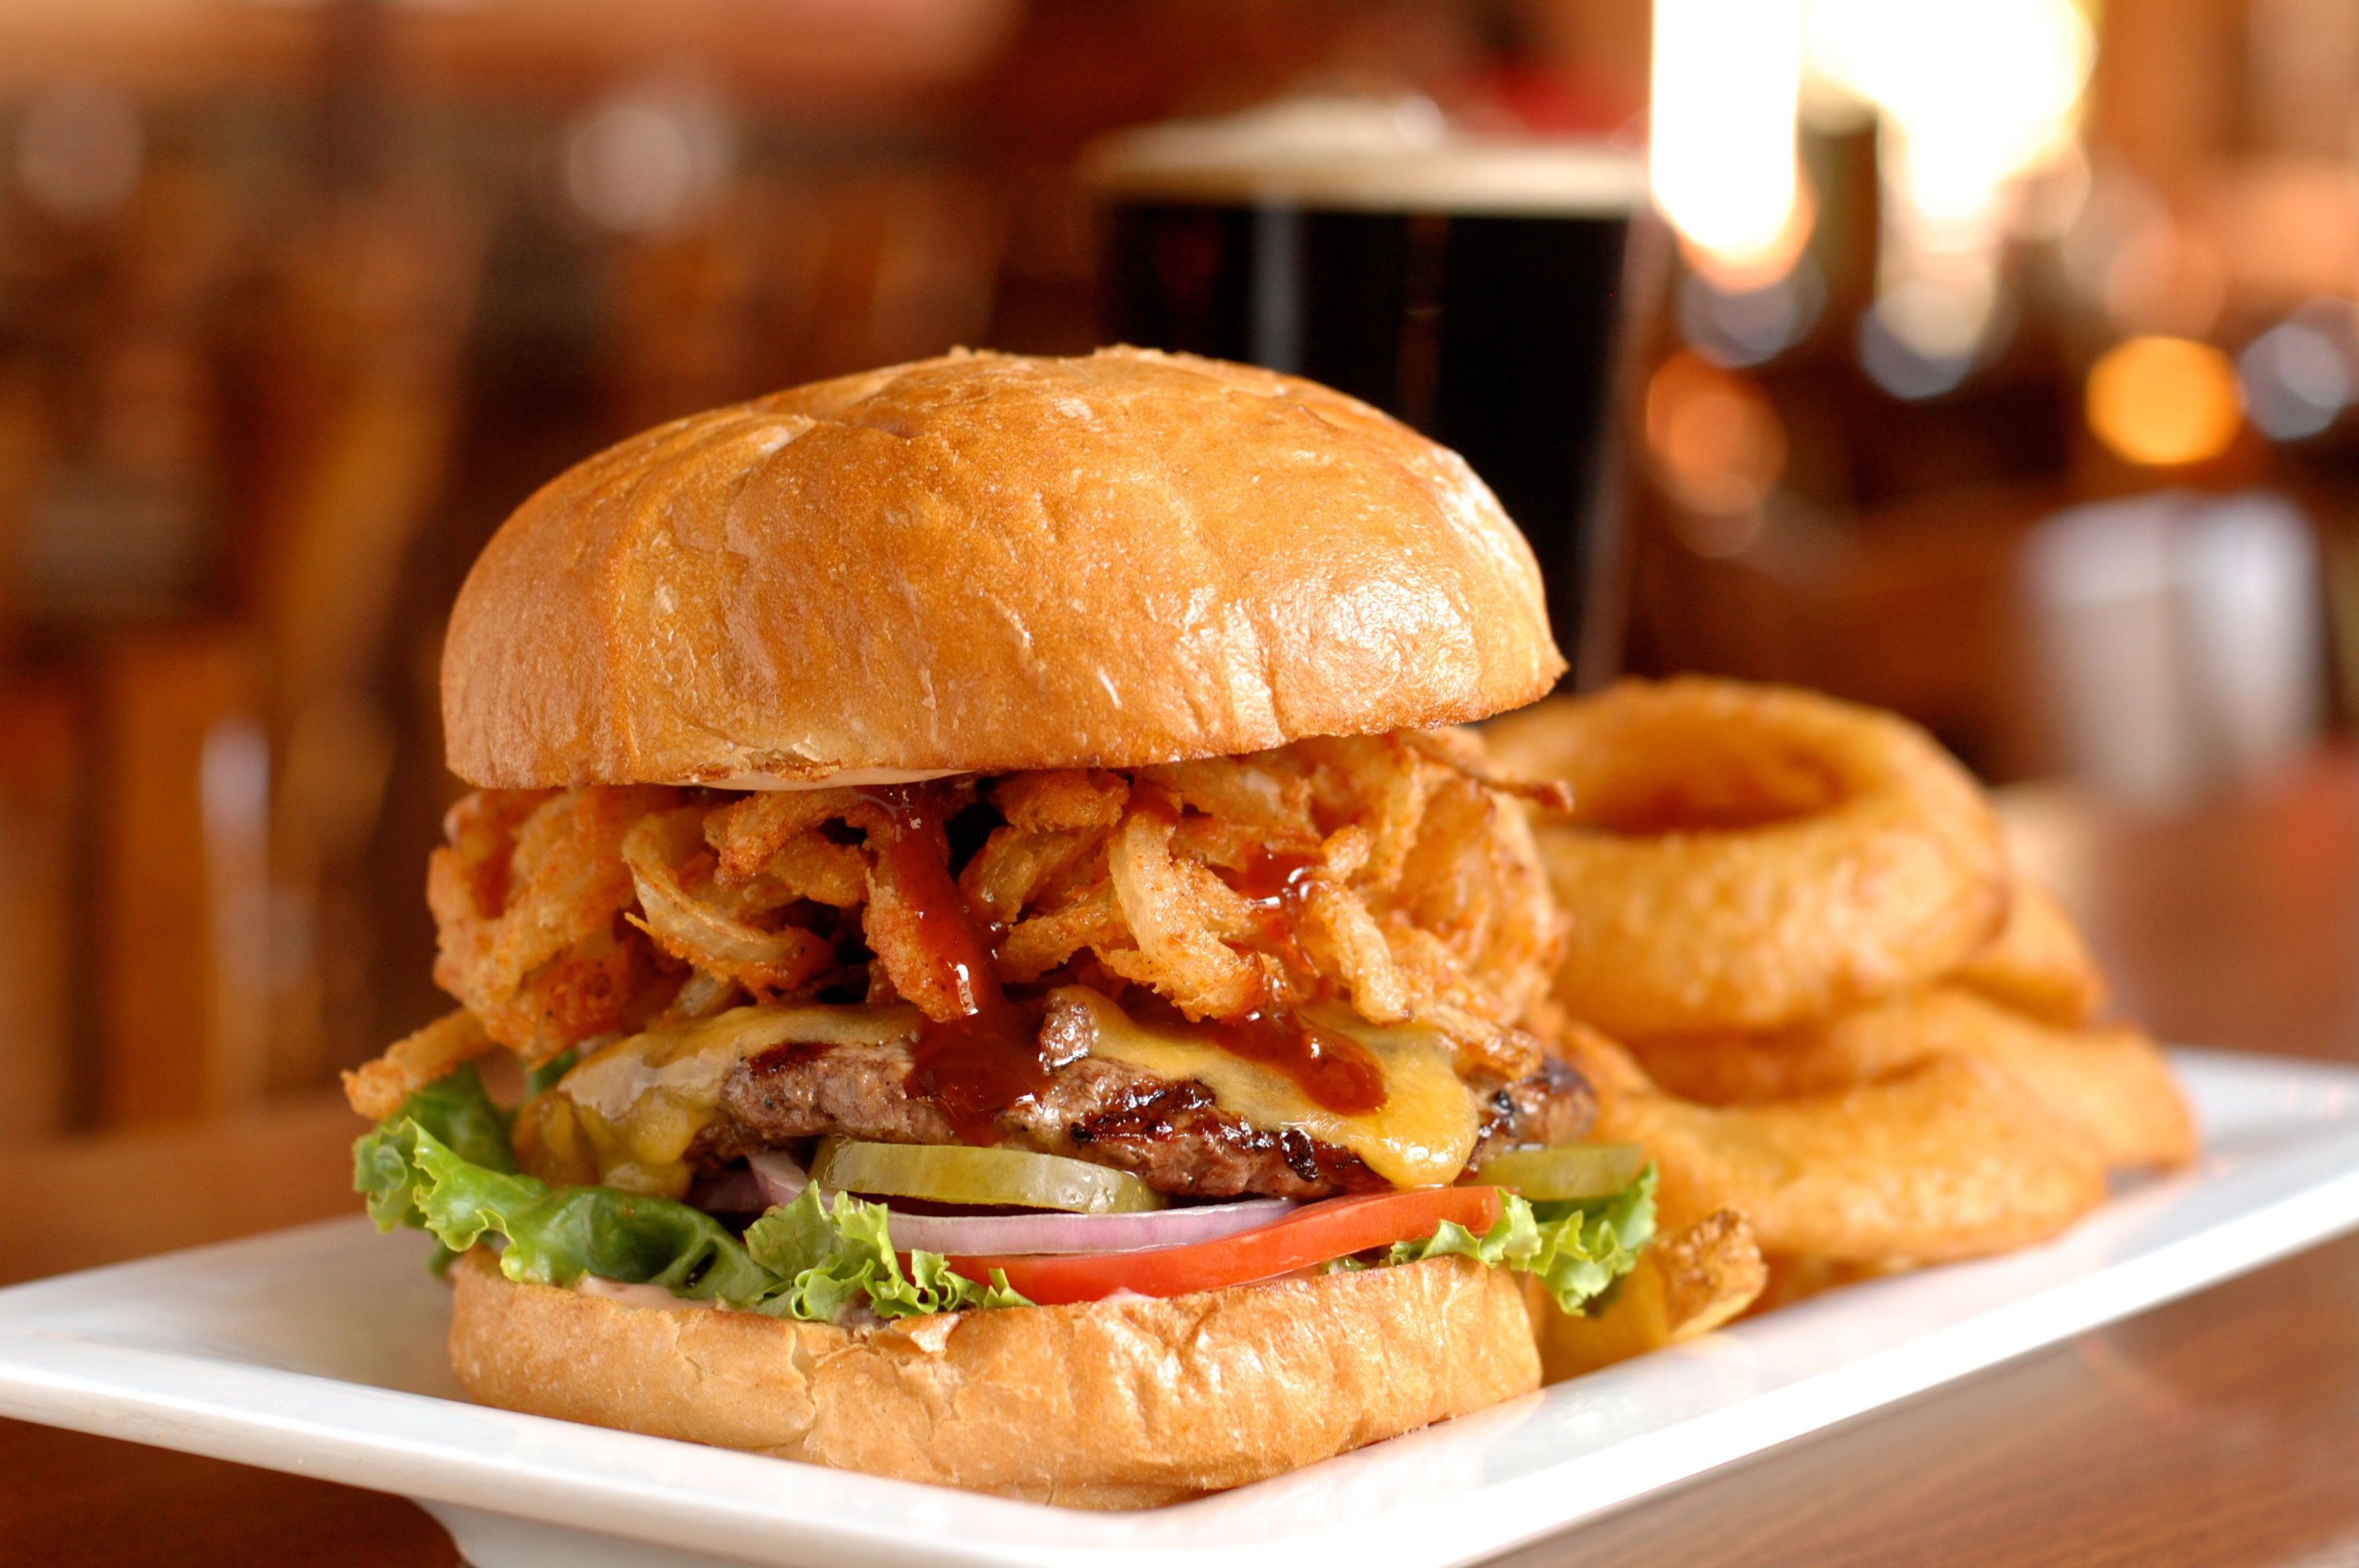 Go for Gourmet Burgers! - Top Restaurant Prices